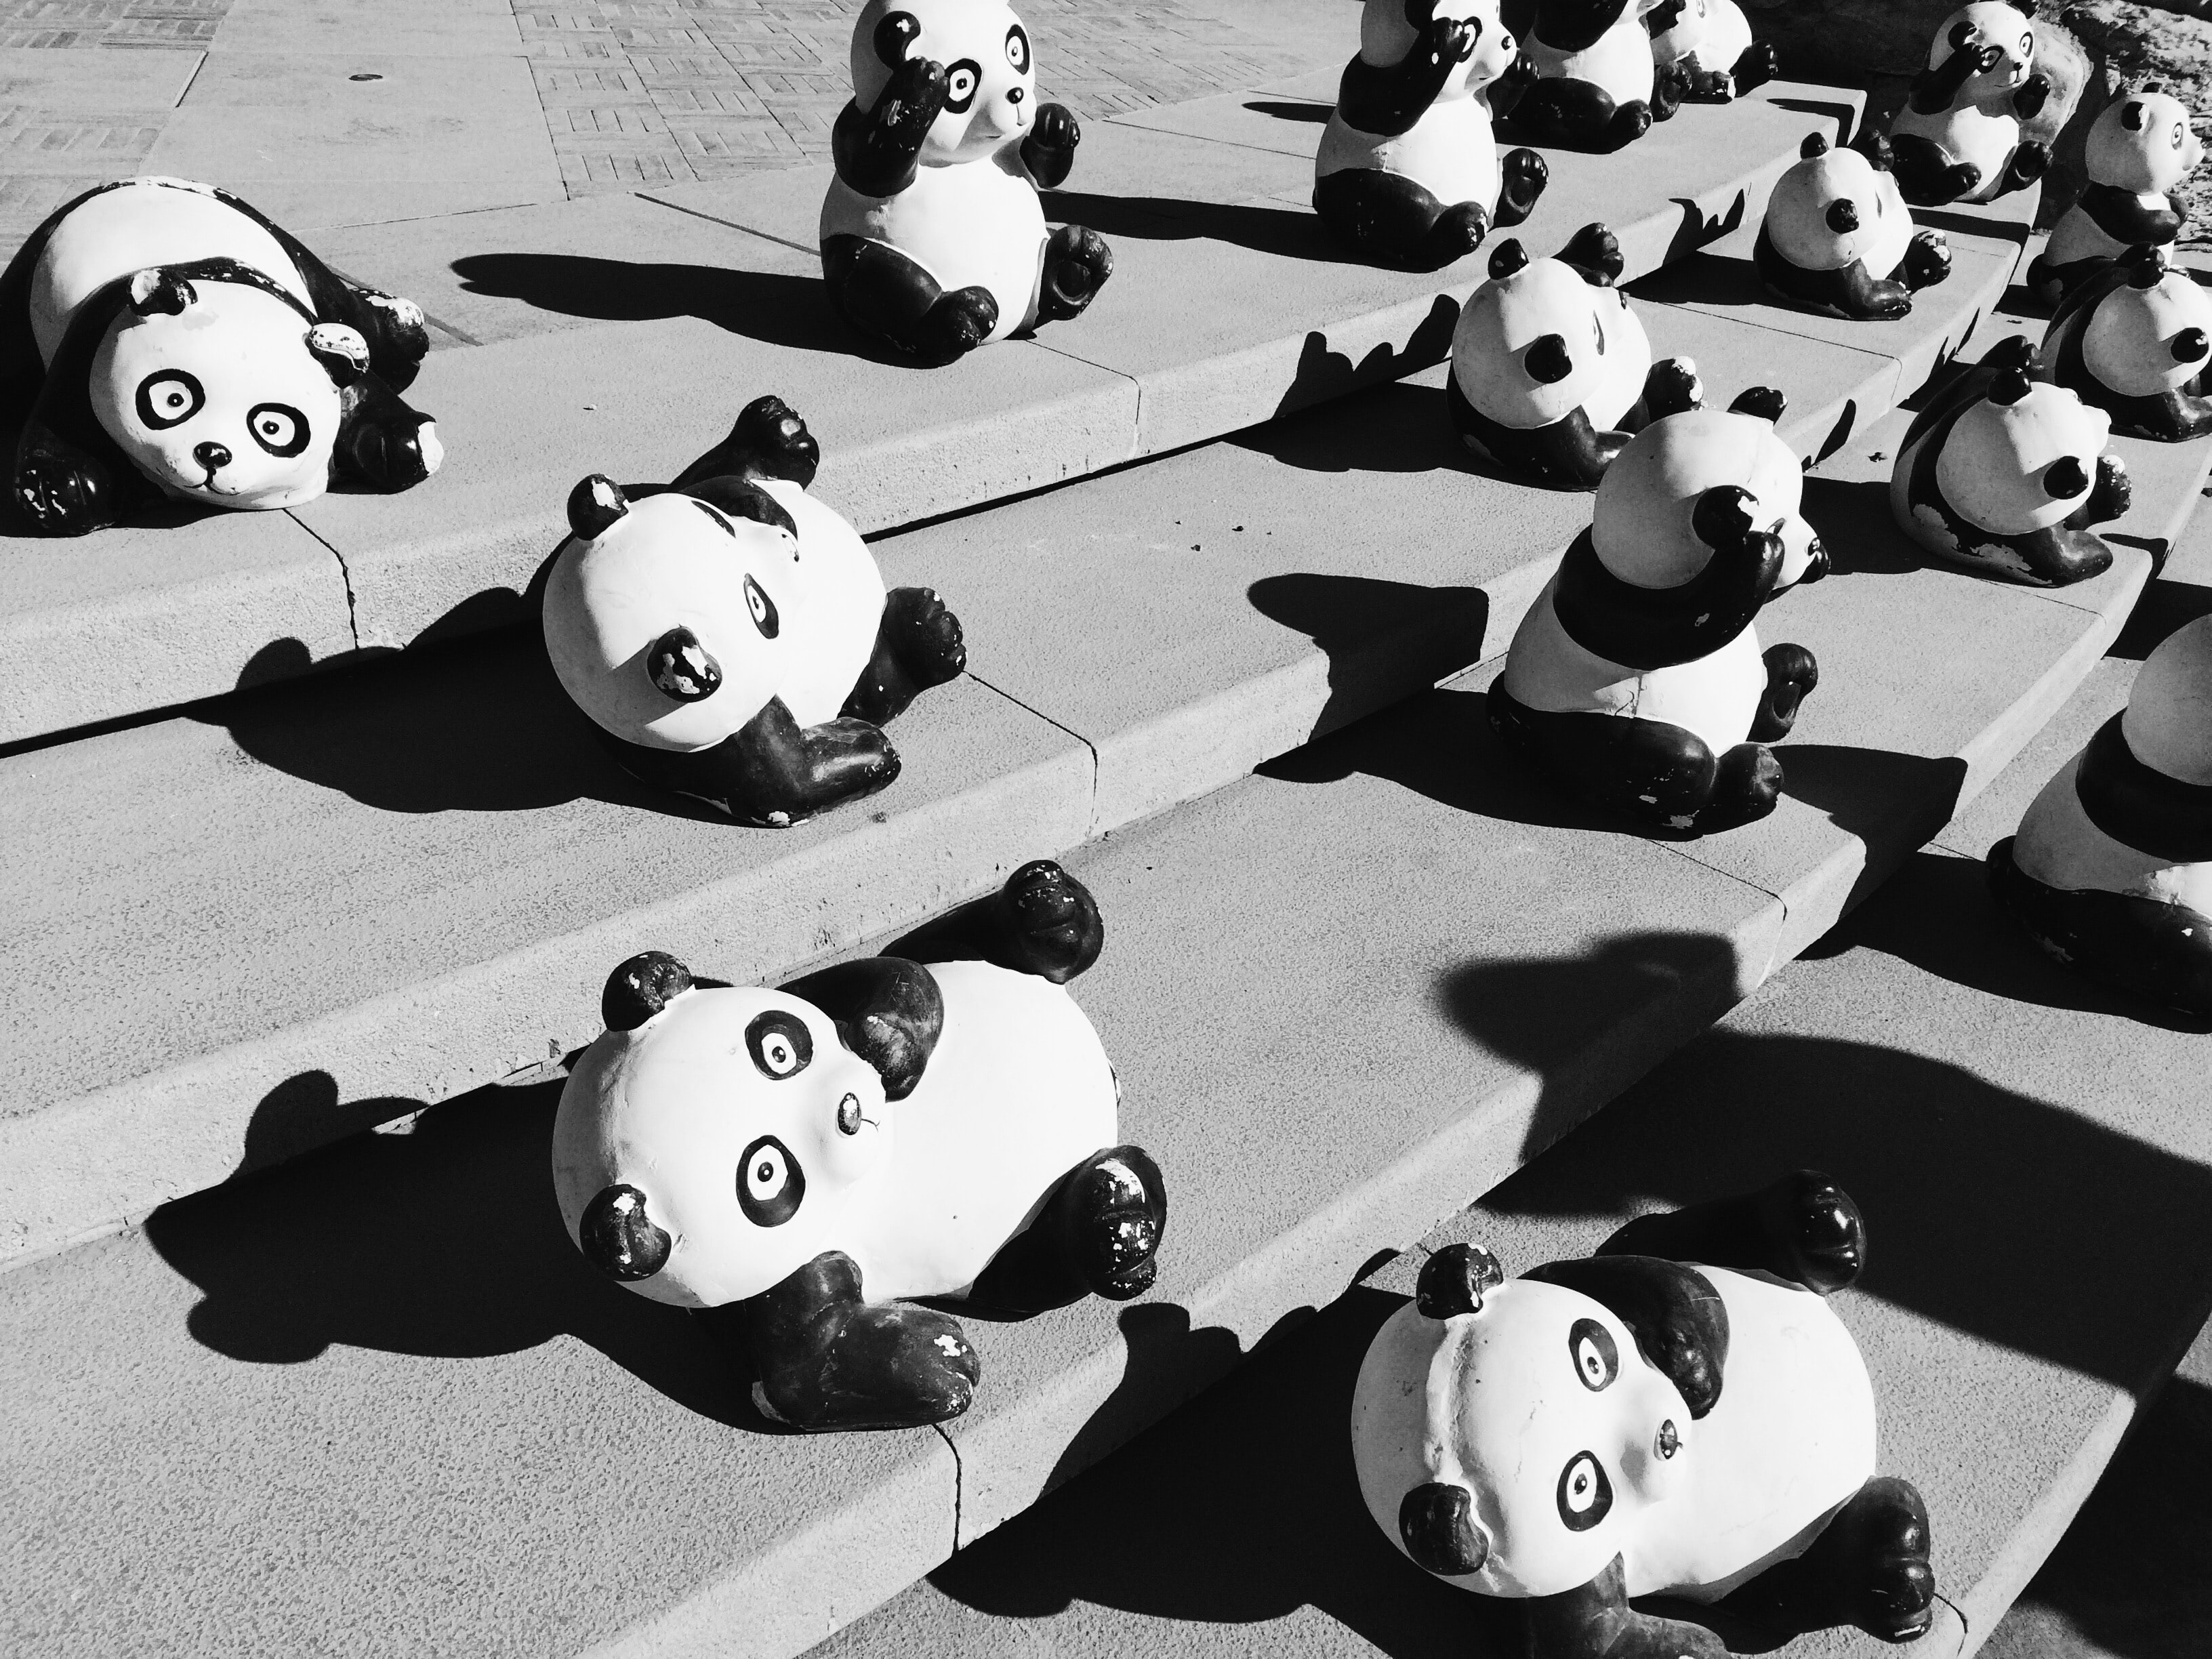 Panda statues on gray concrete stairs during daytime